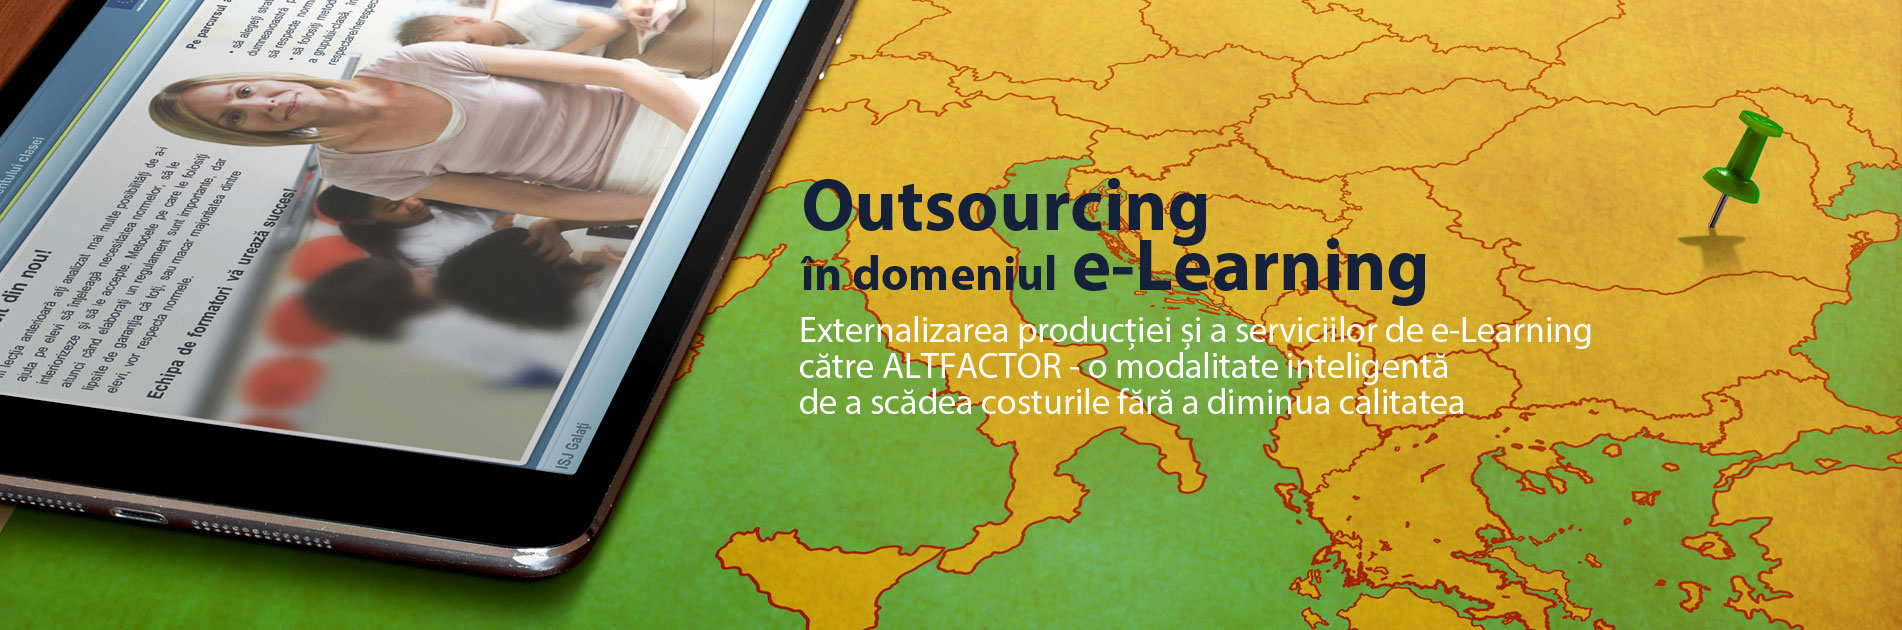 Outsourcing in eLearning